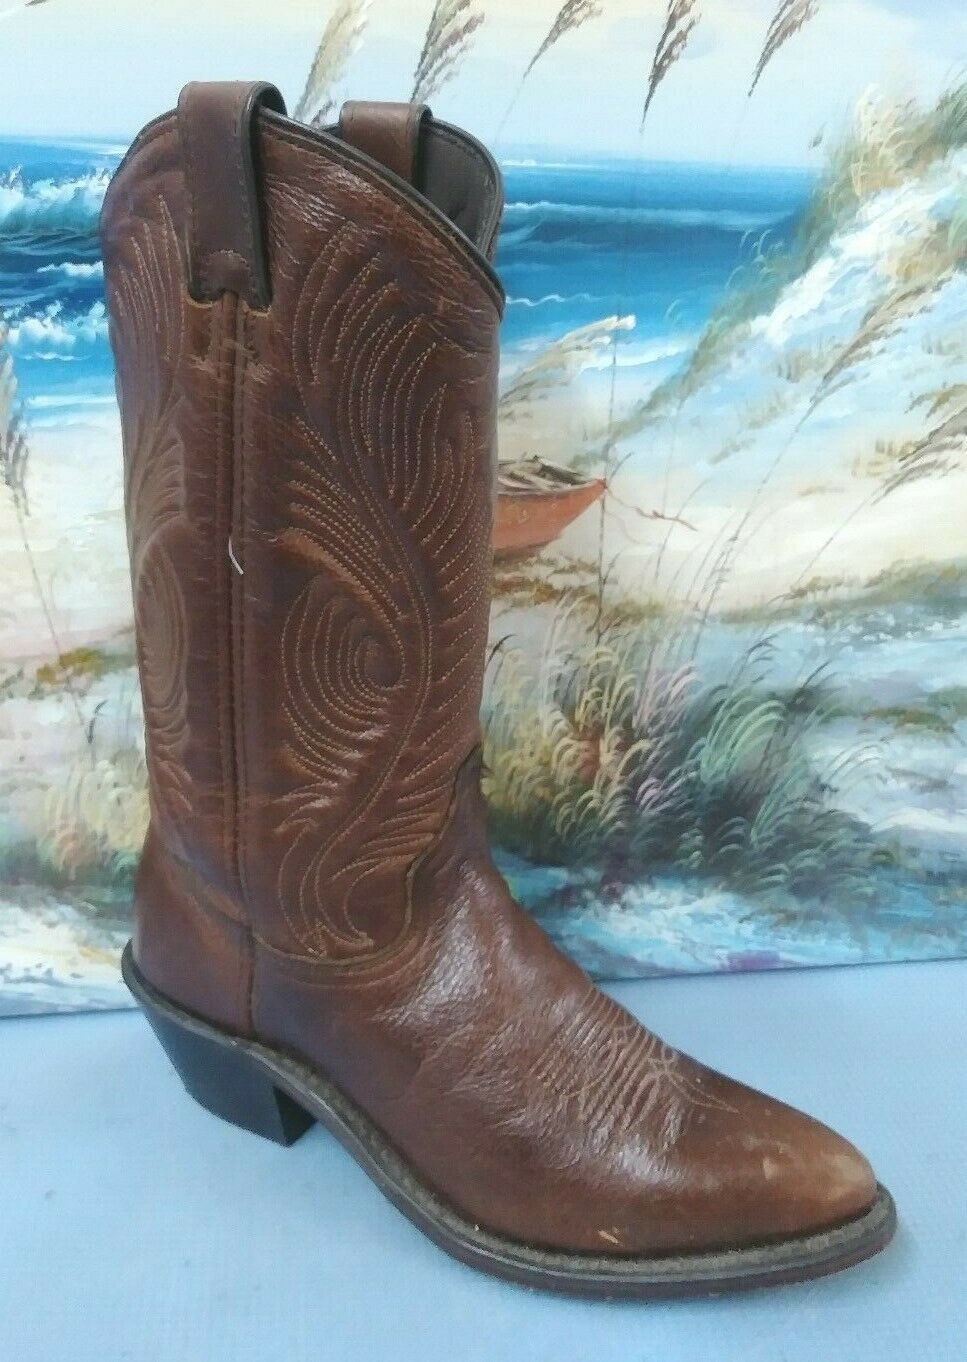 Vintage womens Brown learher western cowboy boot size 6 M   105053695